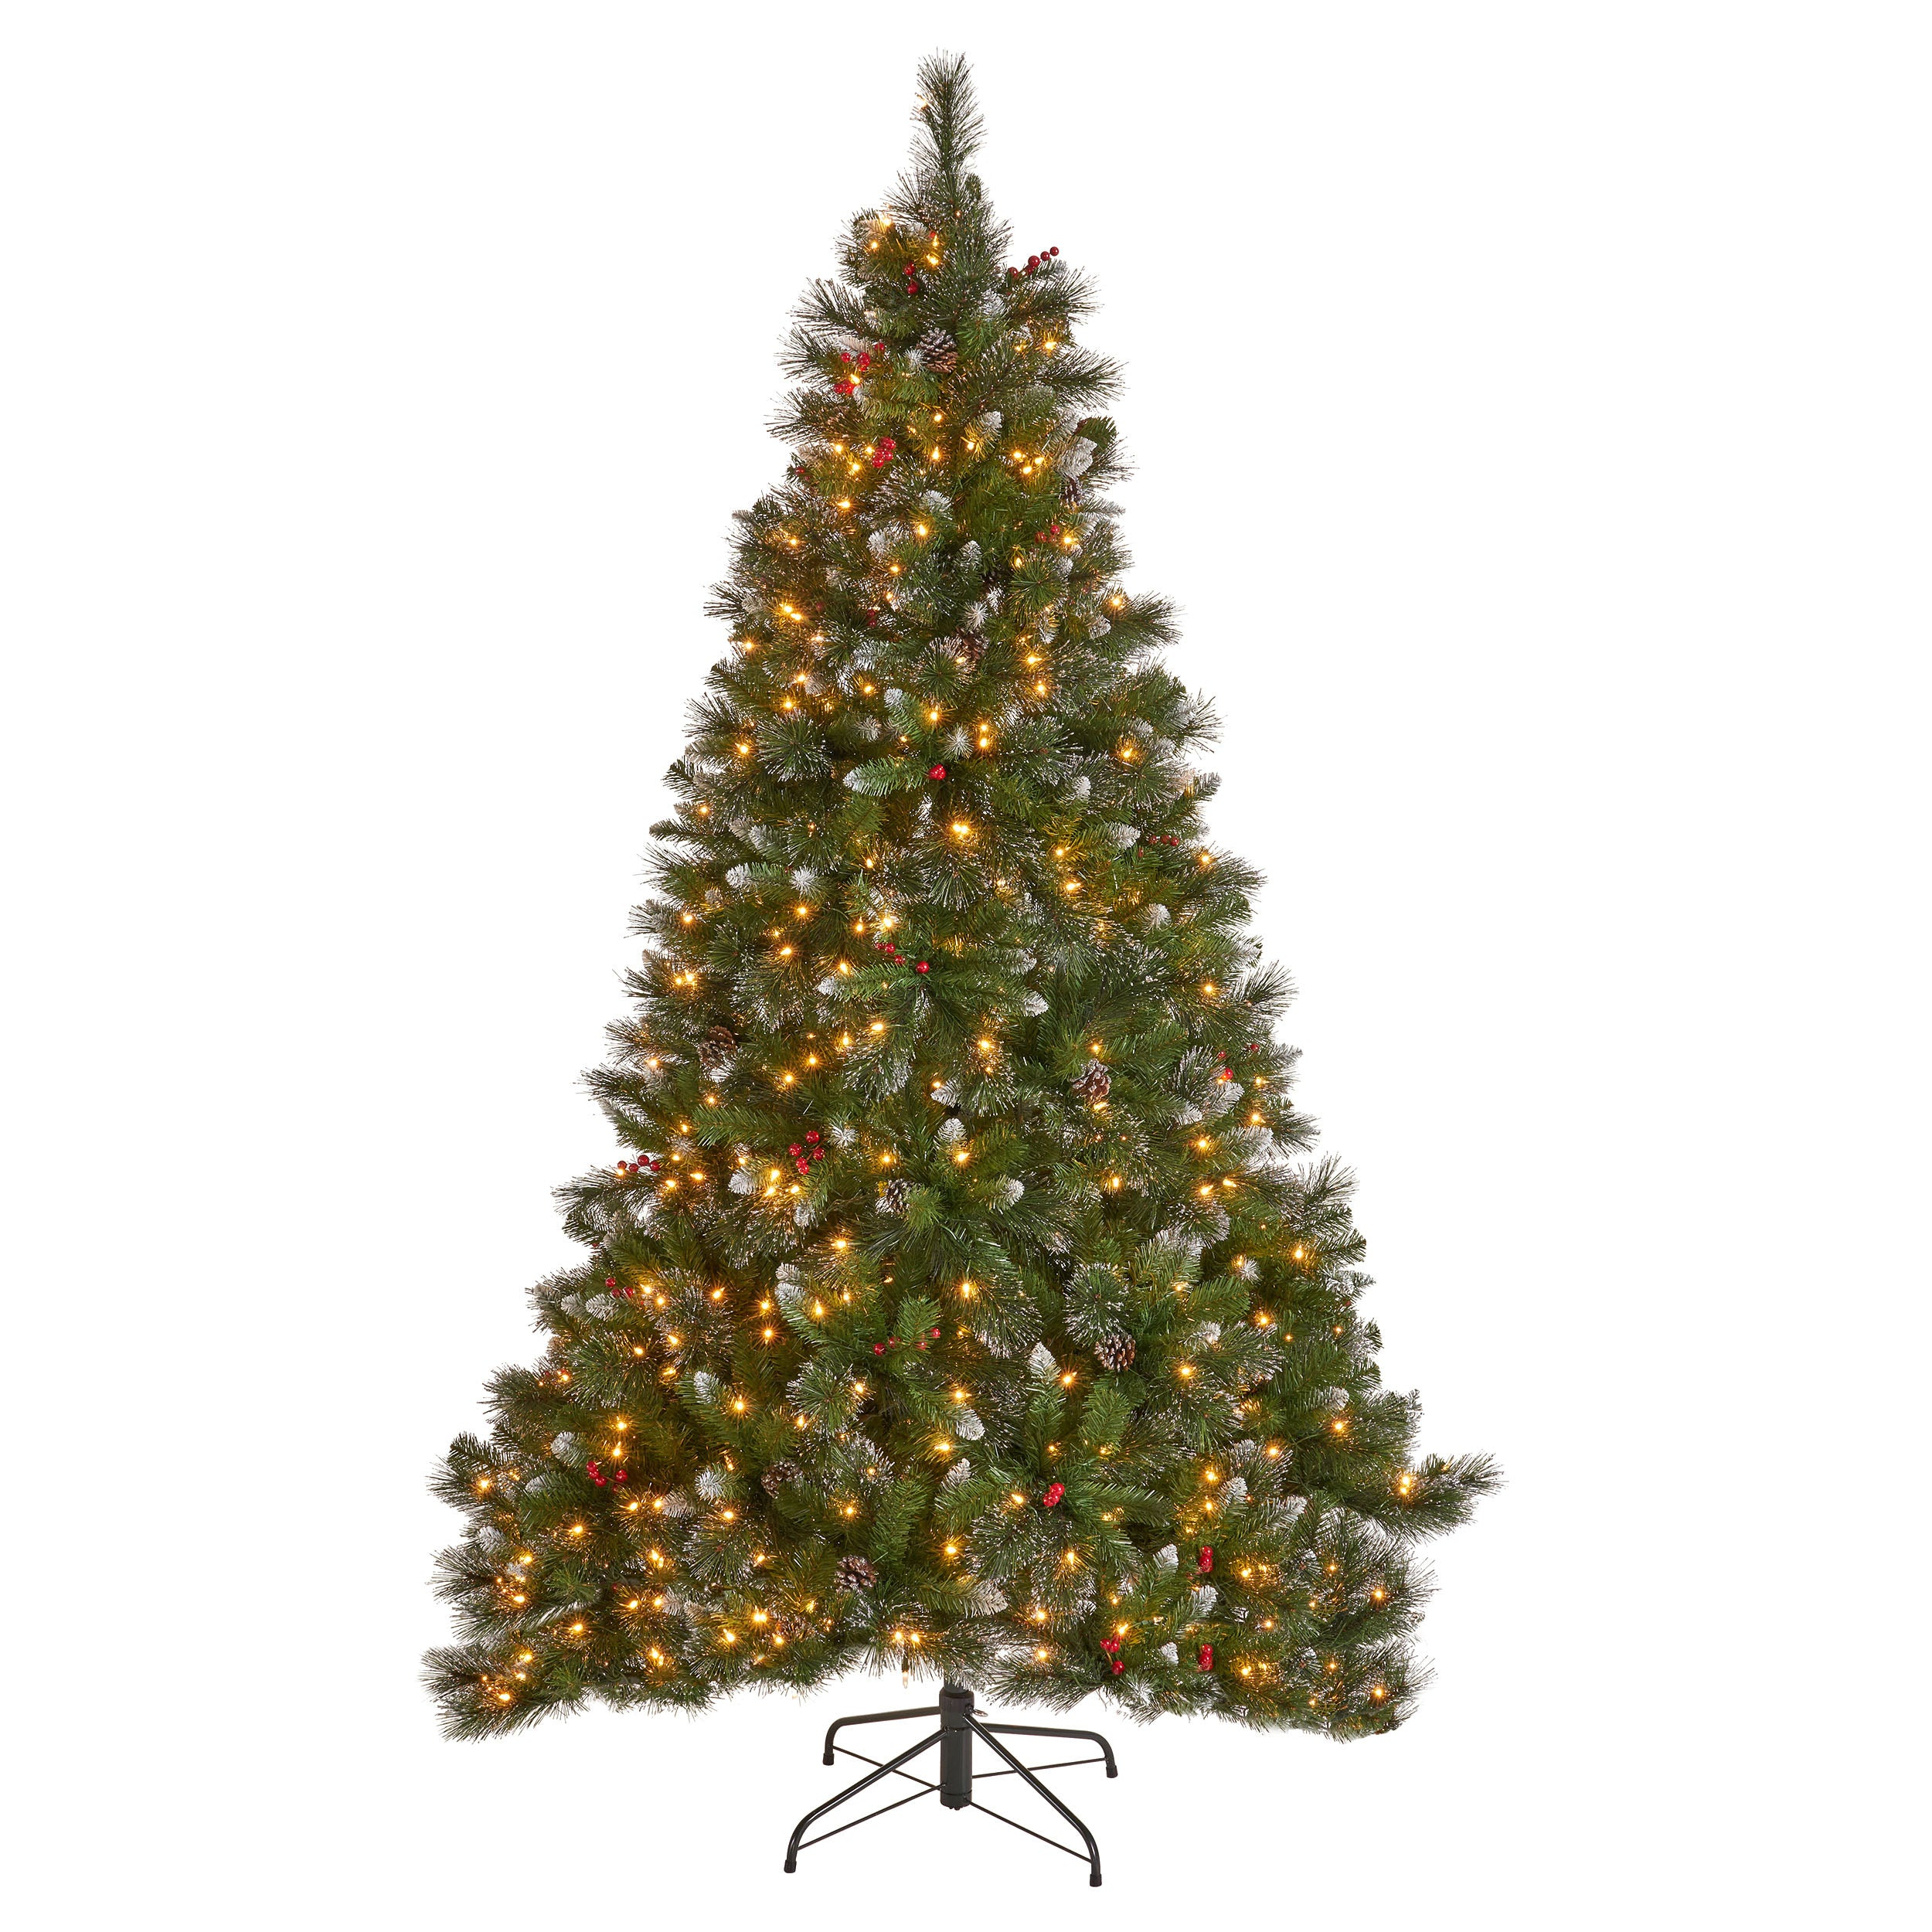 7 foot Mixed Spruce Hinged Artificial Christmas Tree with Glitter Branches Red Berries and Pinecones Lightless